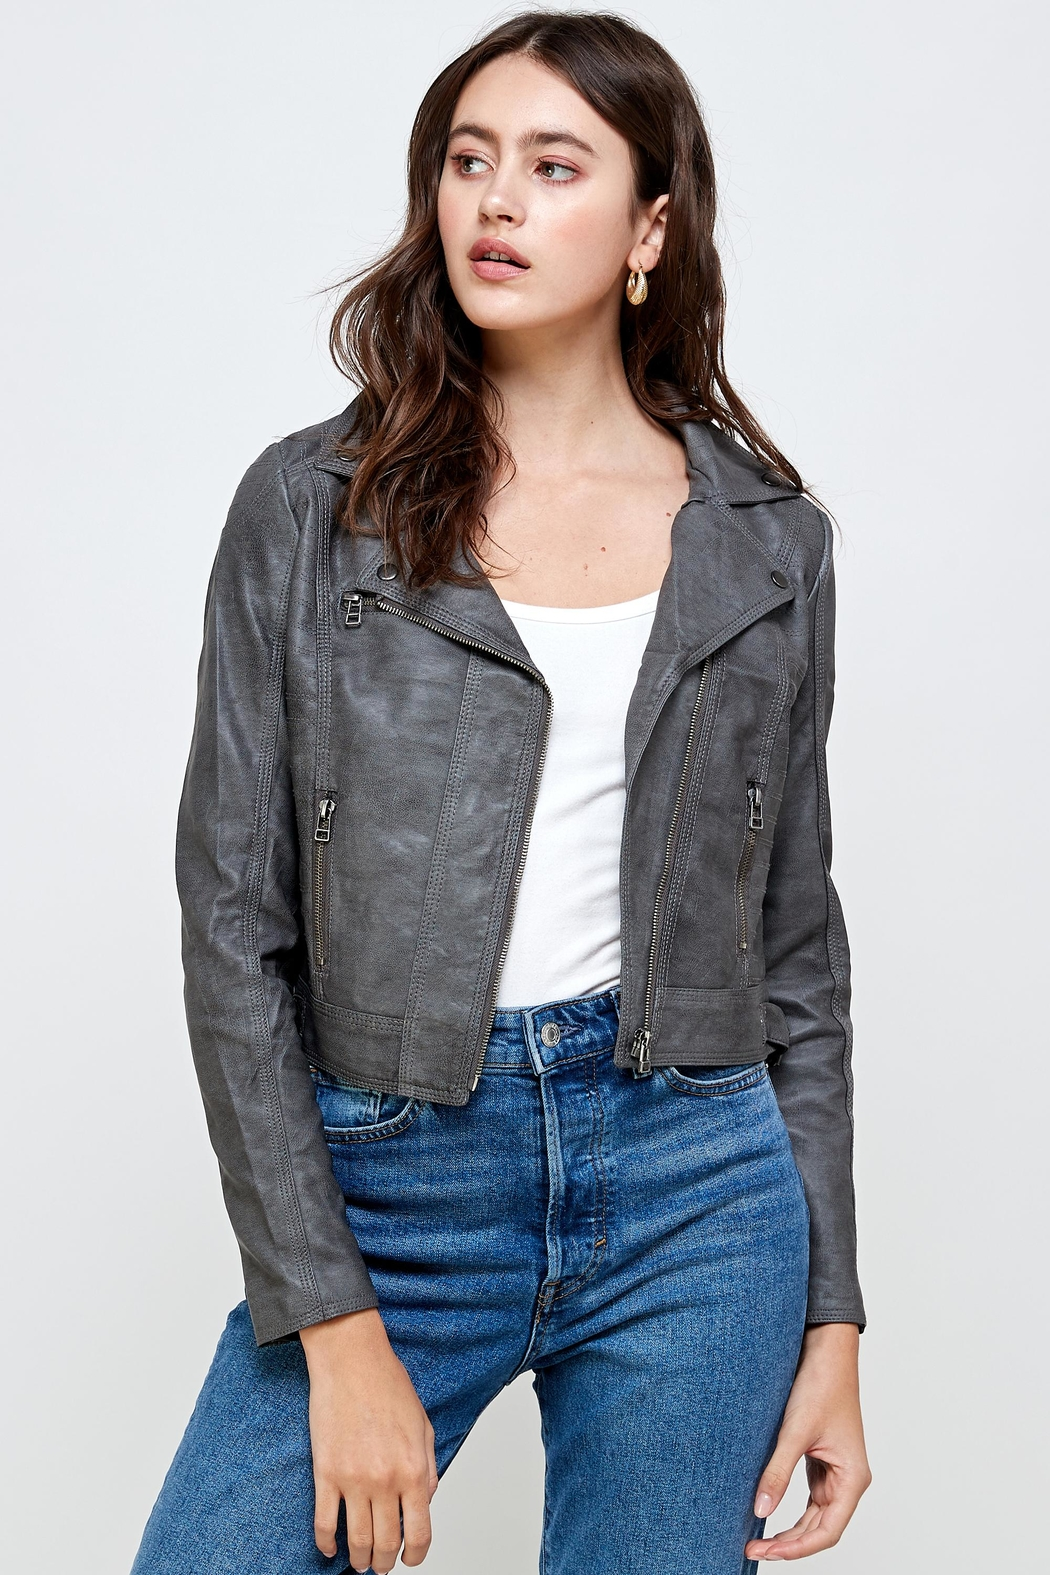 Kaii Stitch Vegan Leather Biker Jacket Top - Main Image